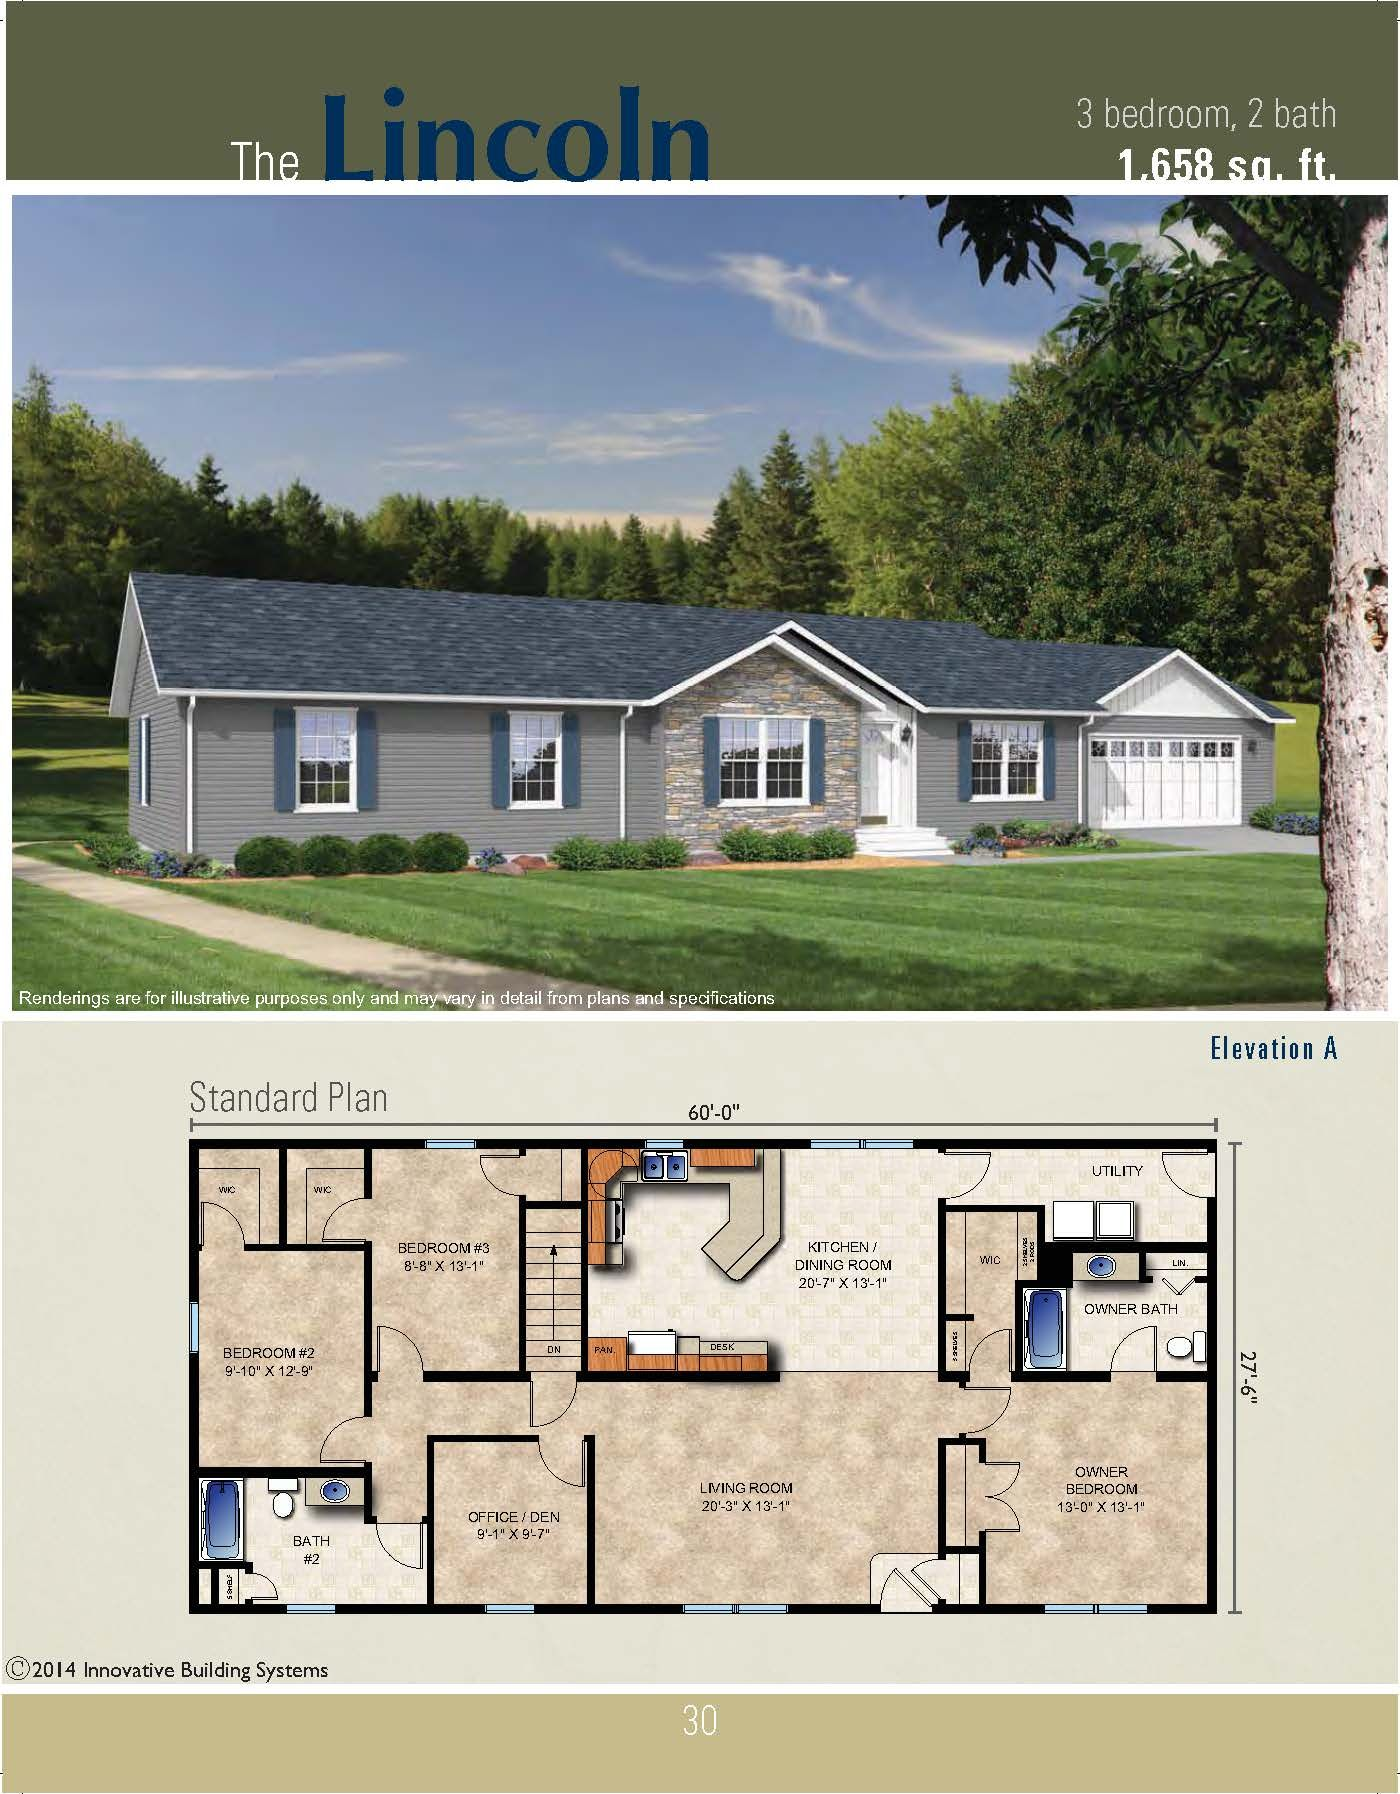 The Lincoln Ranch Plan | Ranch house plans, Dream house ... on ranch style house plans with open floor plan, new ranch home style, new construction home floor plan, new ranch home construction, new ranch house plans,